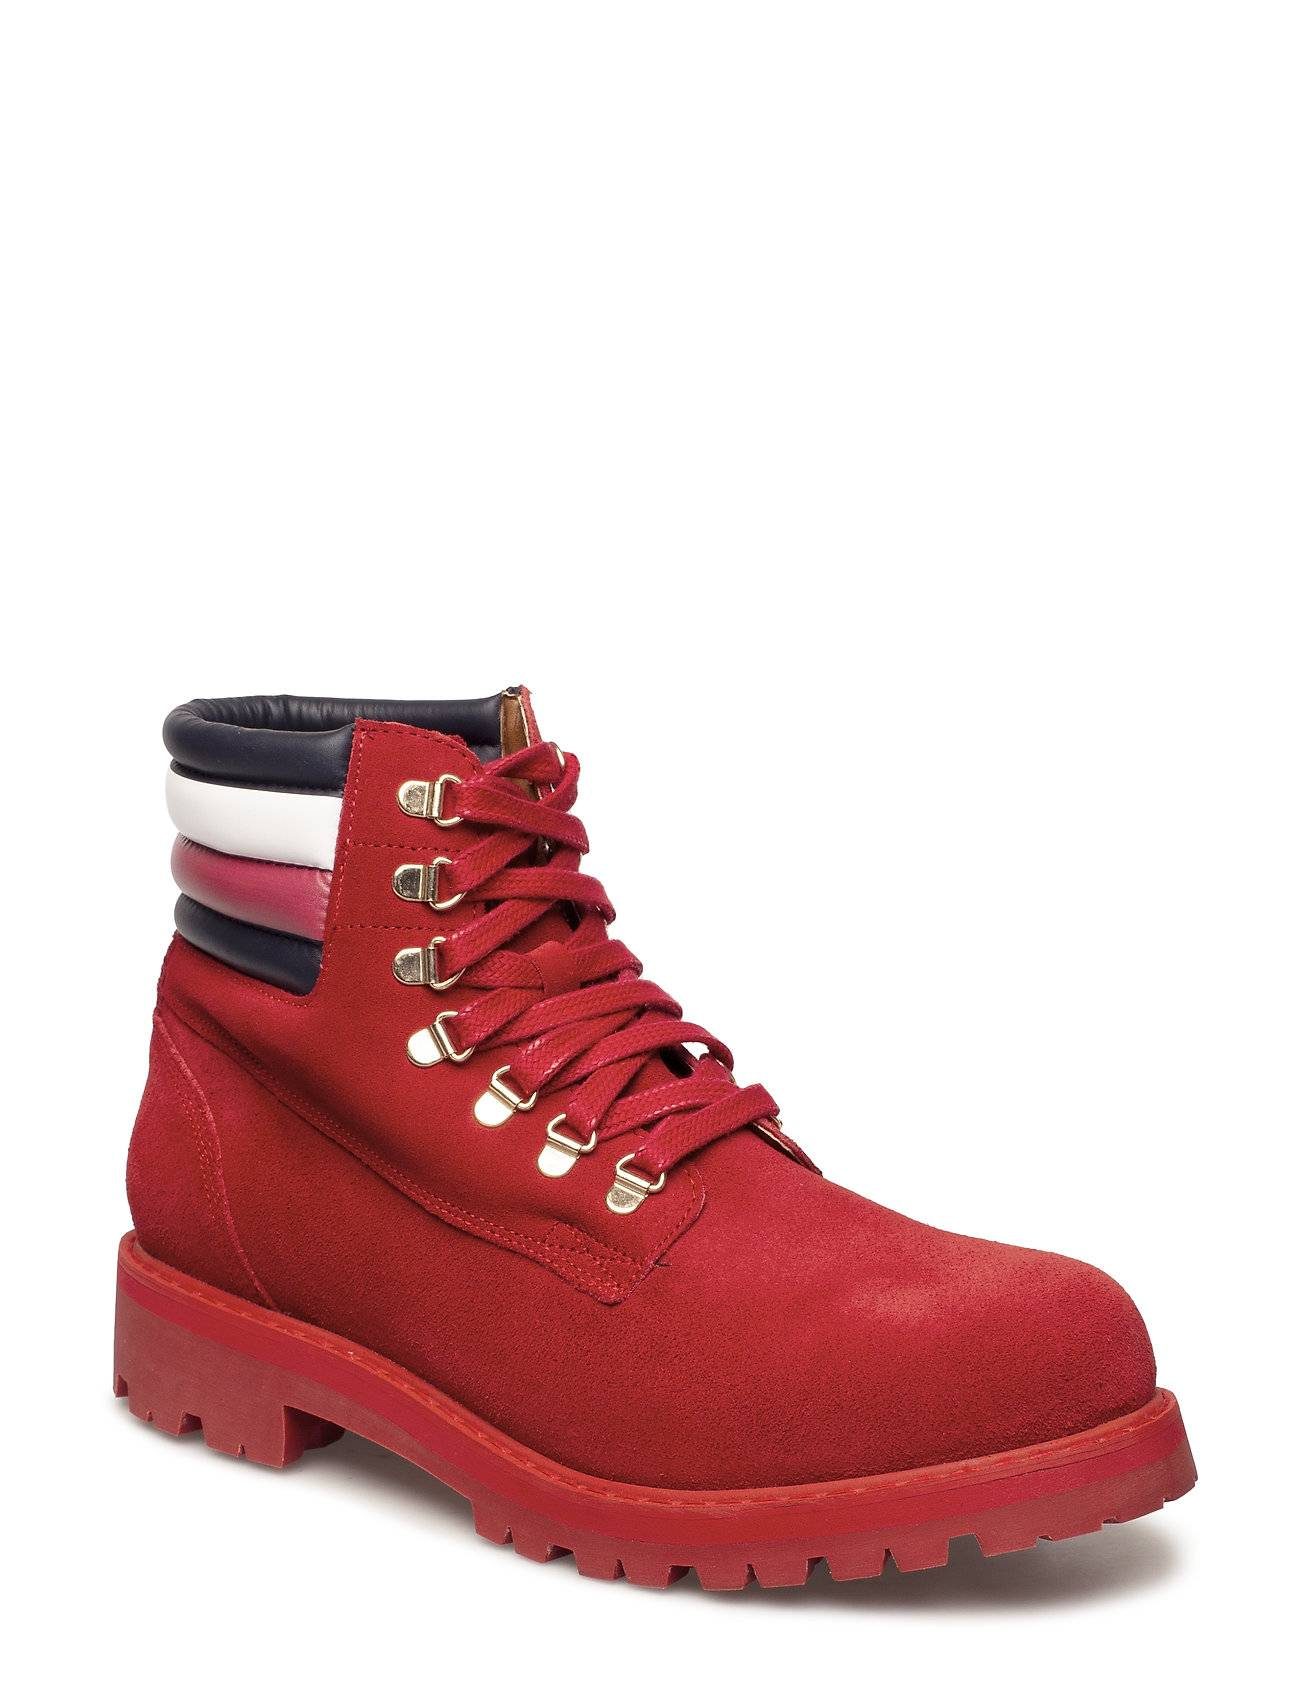 Tommy Hilfiger Lewis Hamilton Suede Hiking Boot